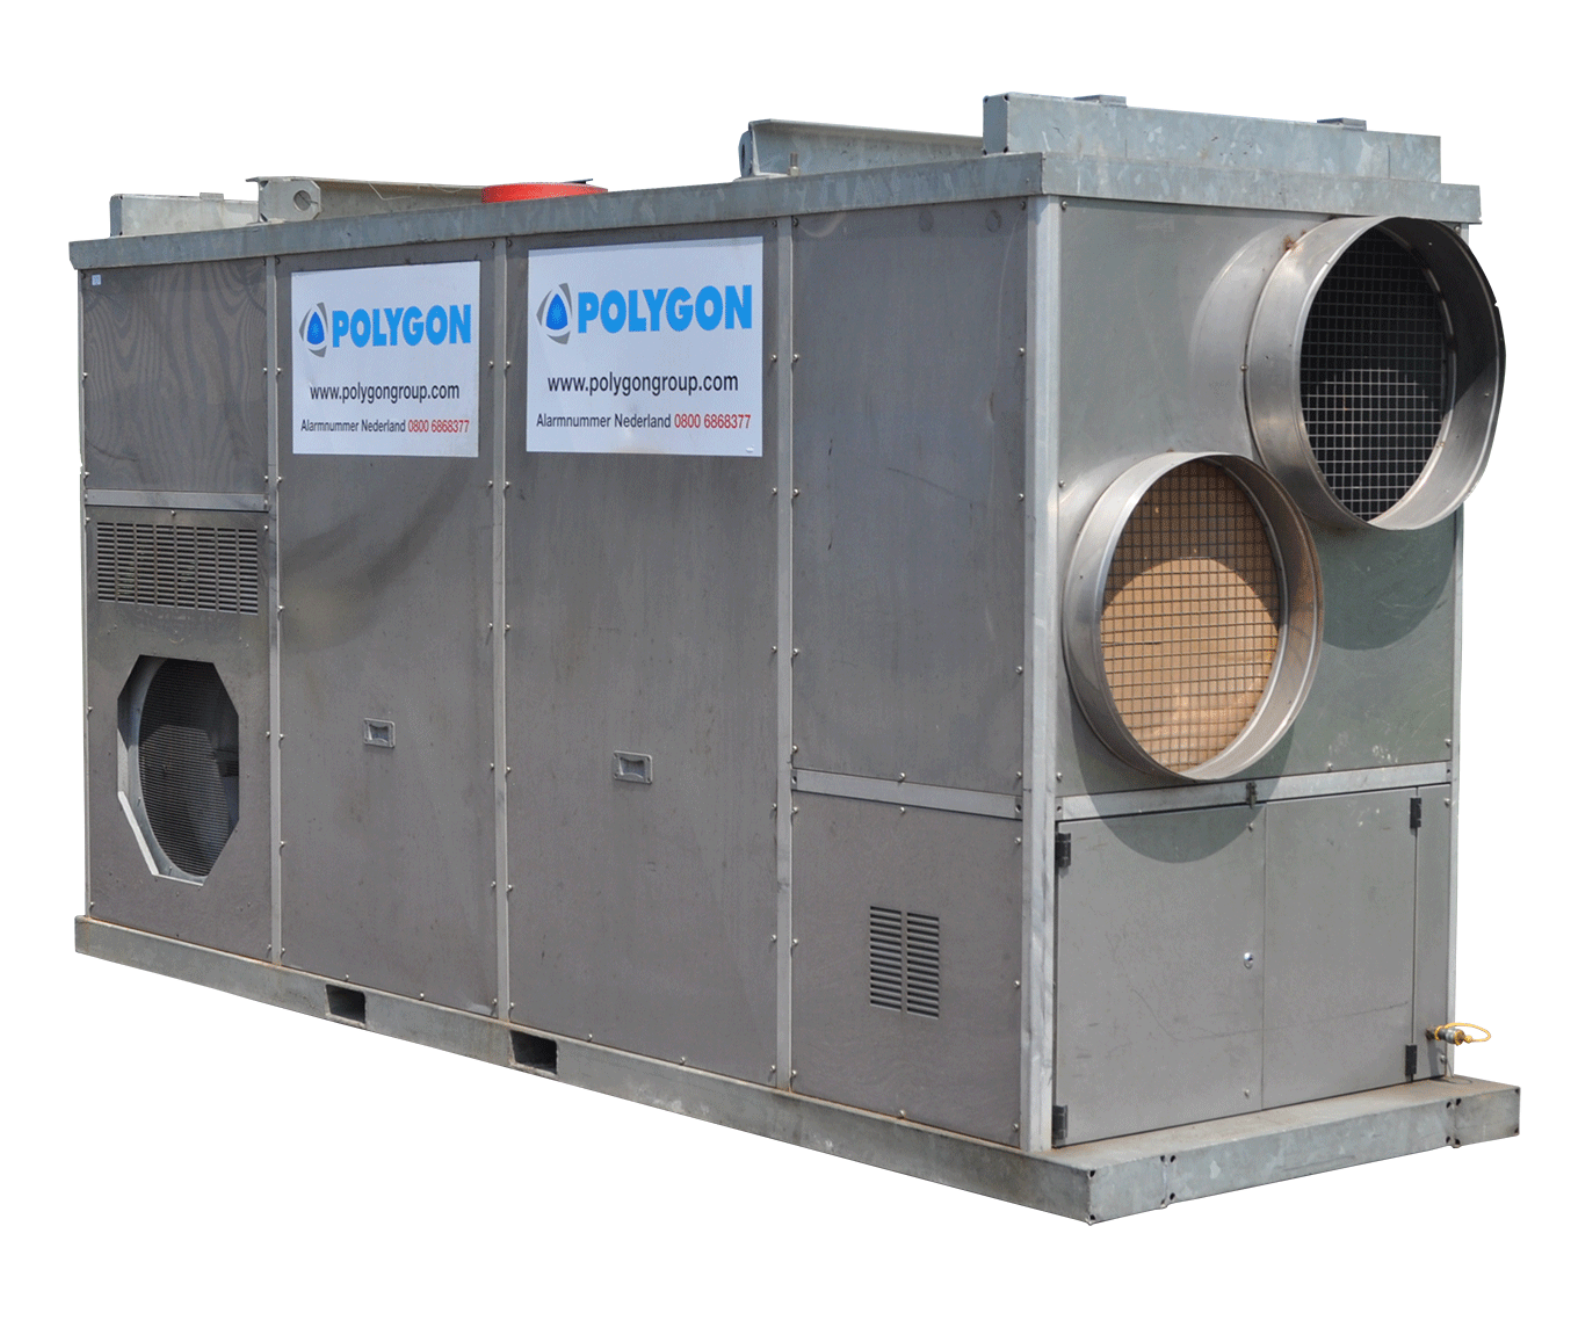 Polygon gasgestookte heater MOH 385RHP